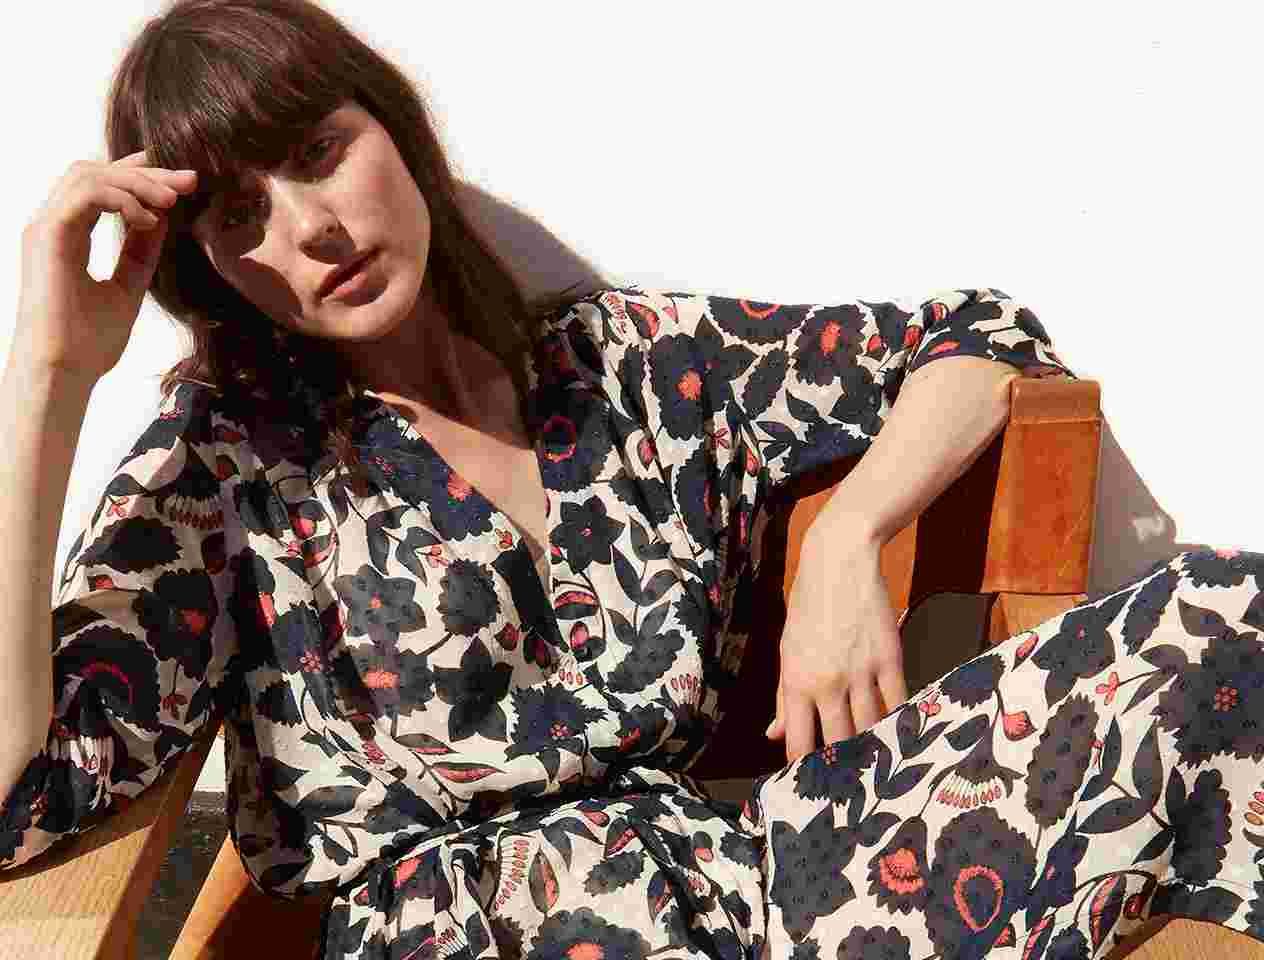 Just Female model in a floral dress